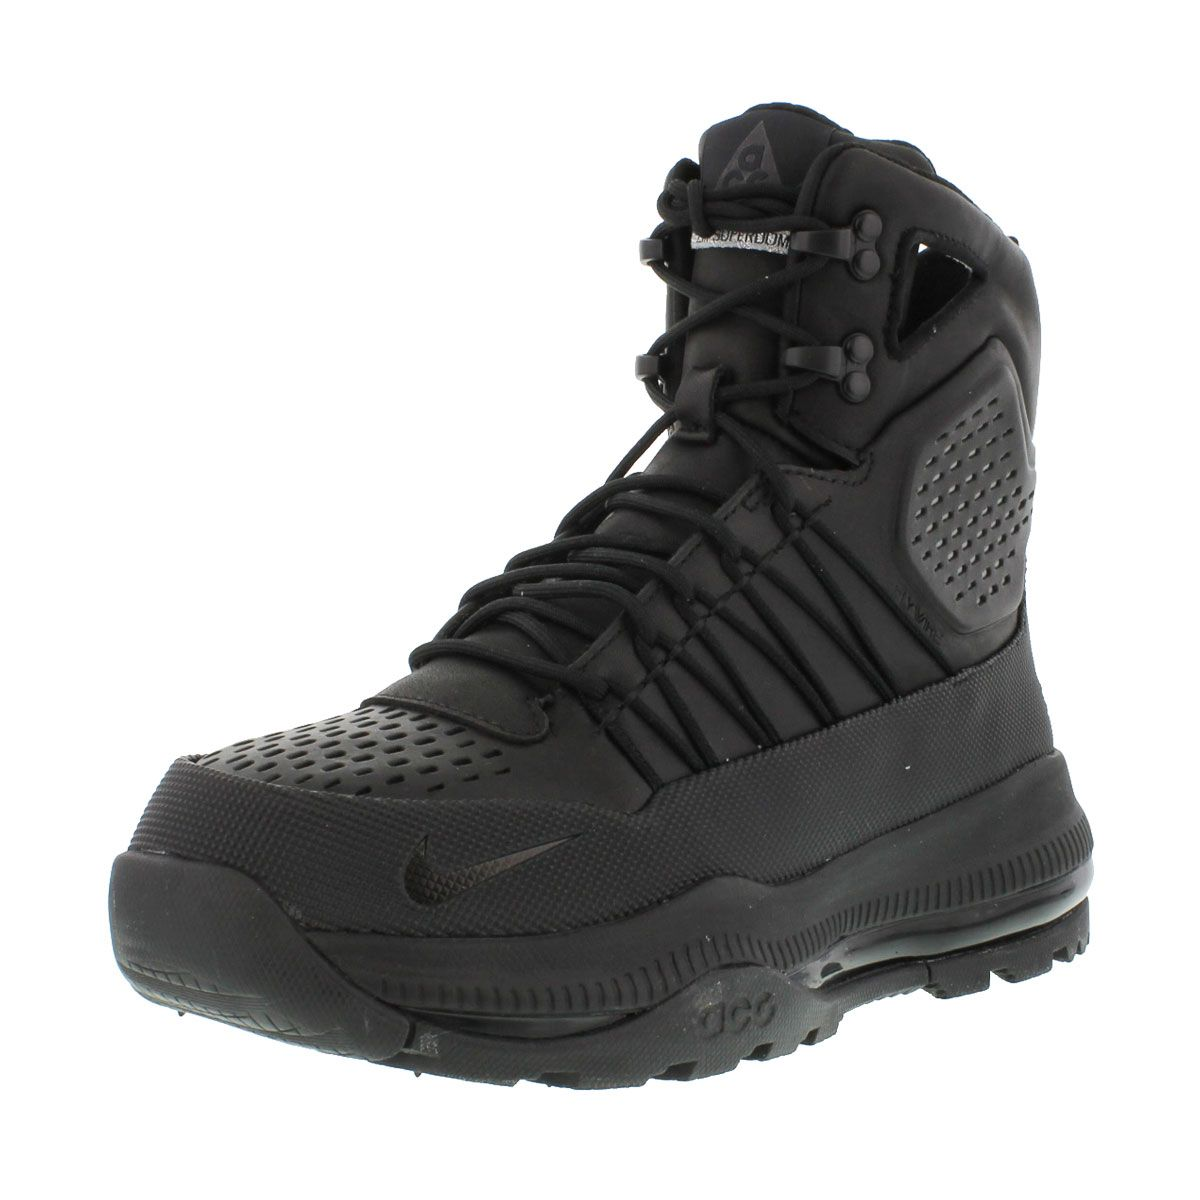 reputable site 8b4ce 31144 Nike Acg Boots Nike in store only